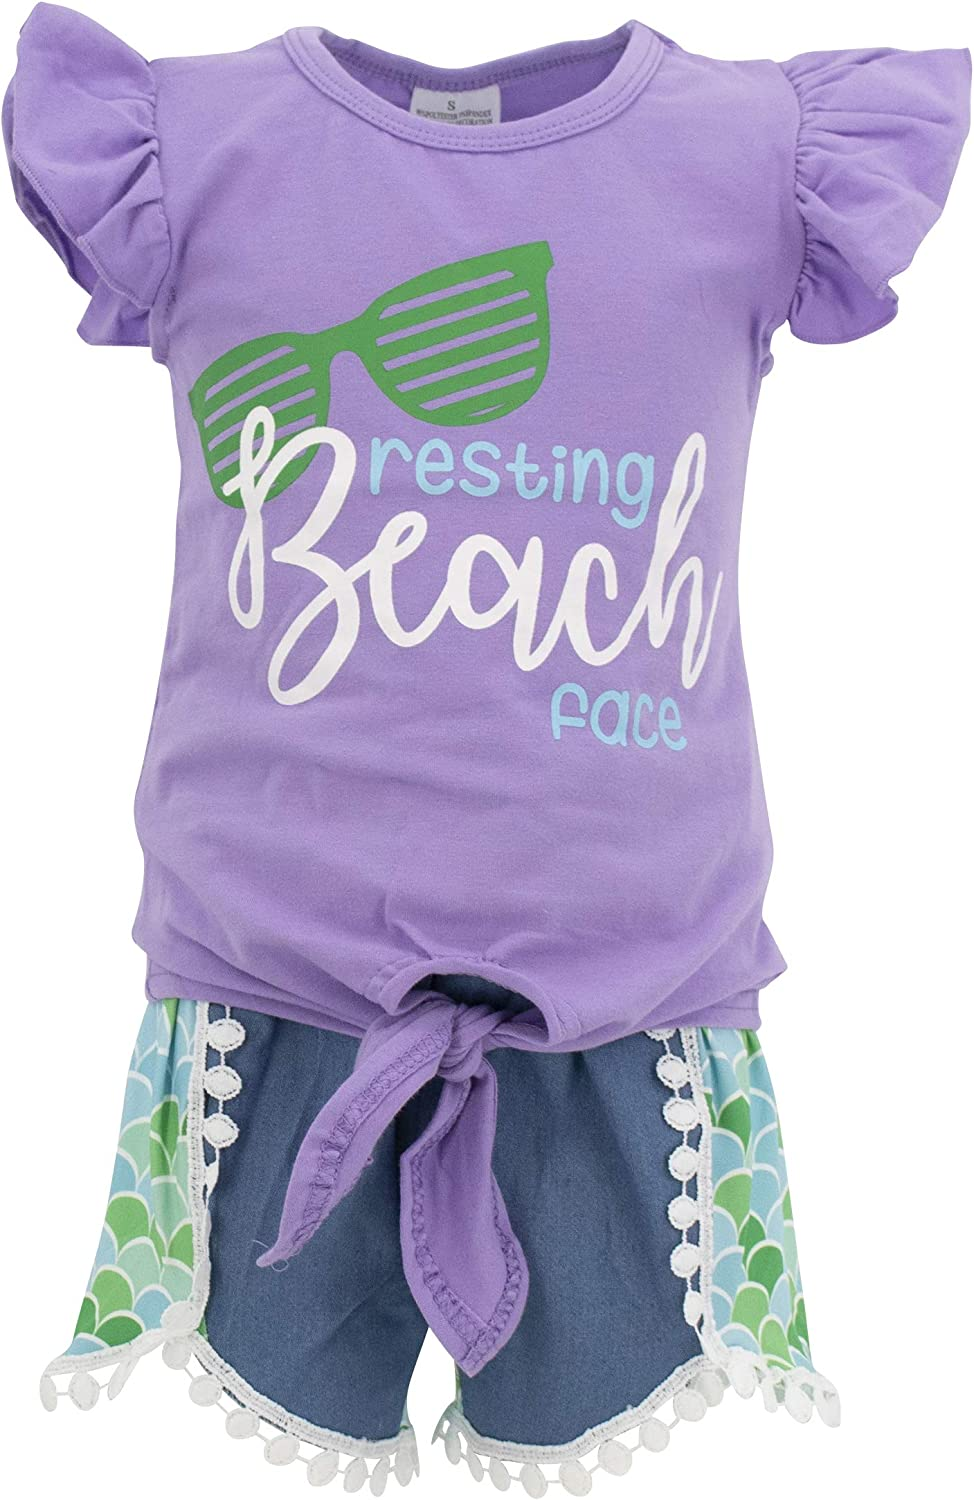 Max 48% OFF At the price of surprise Unique Baby Girls Resting Beach Face Mermaid Ou Set Short Summer